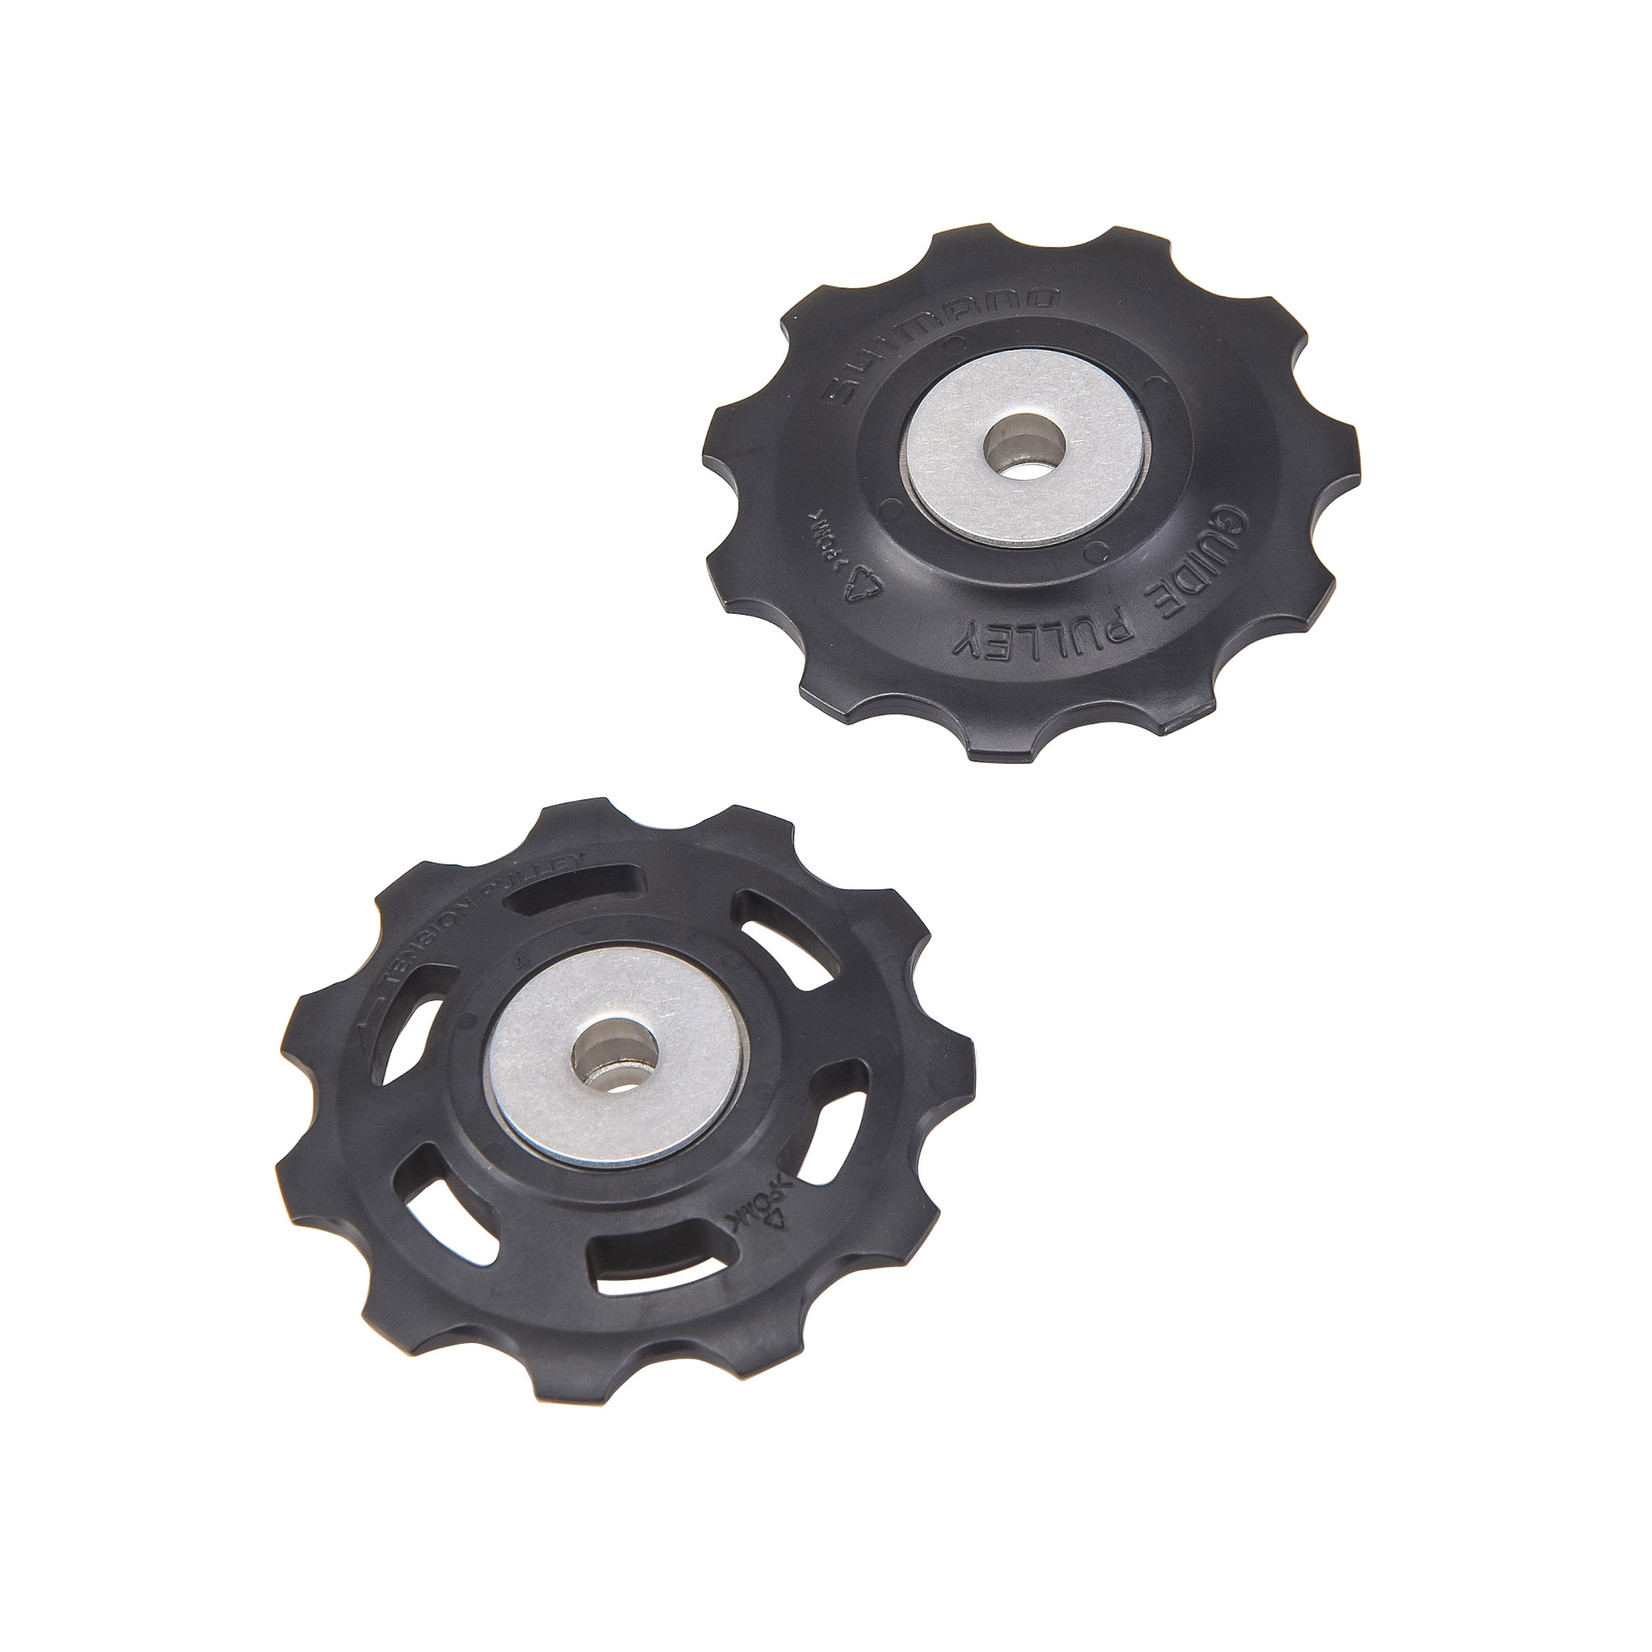 Shimano Shimano, Dyna-Sys Pulley Set High Grade - Guide & Tension RD-M780 / M781 / M786 / M773